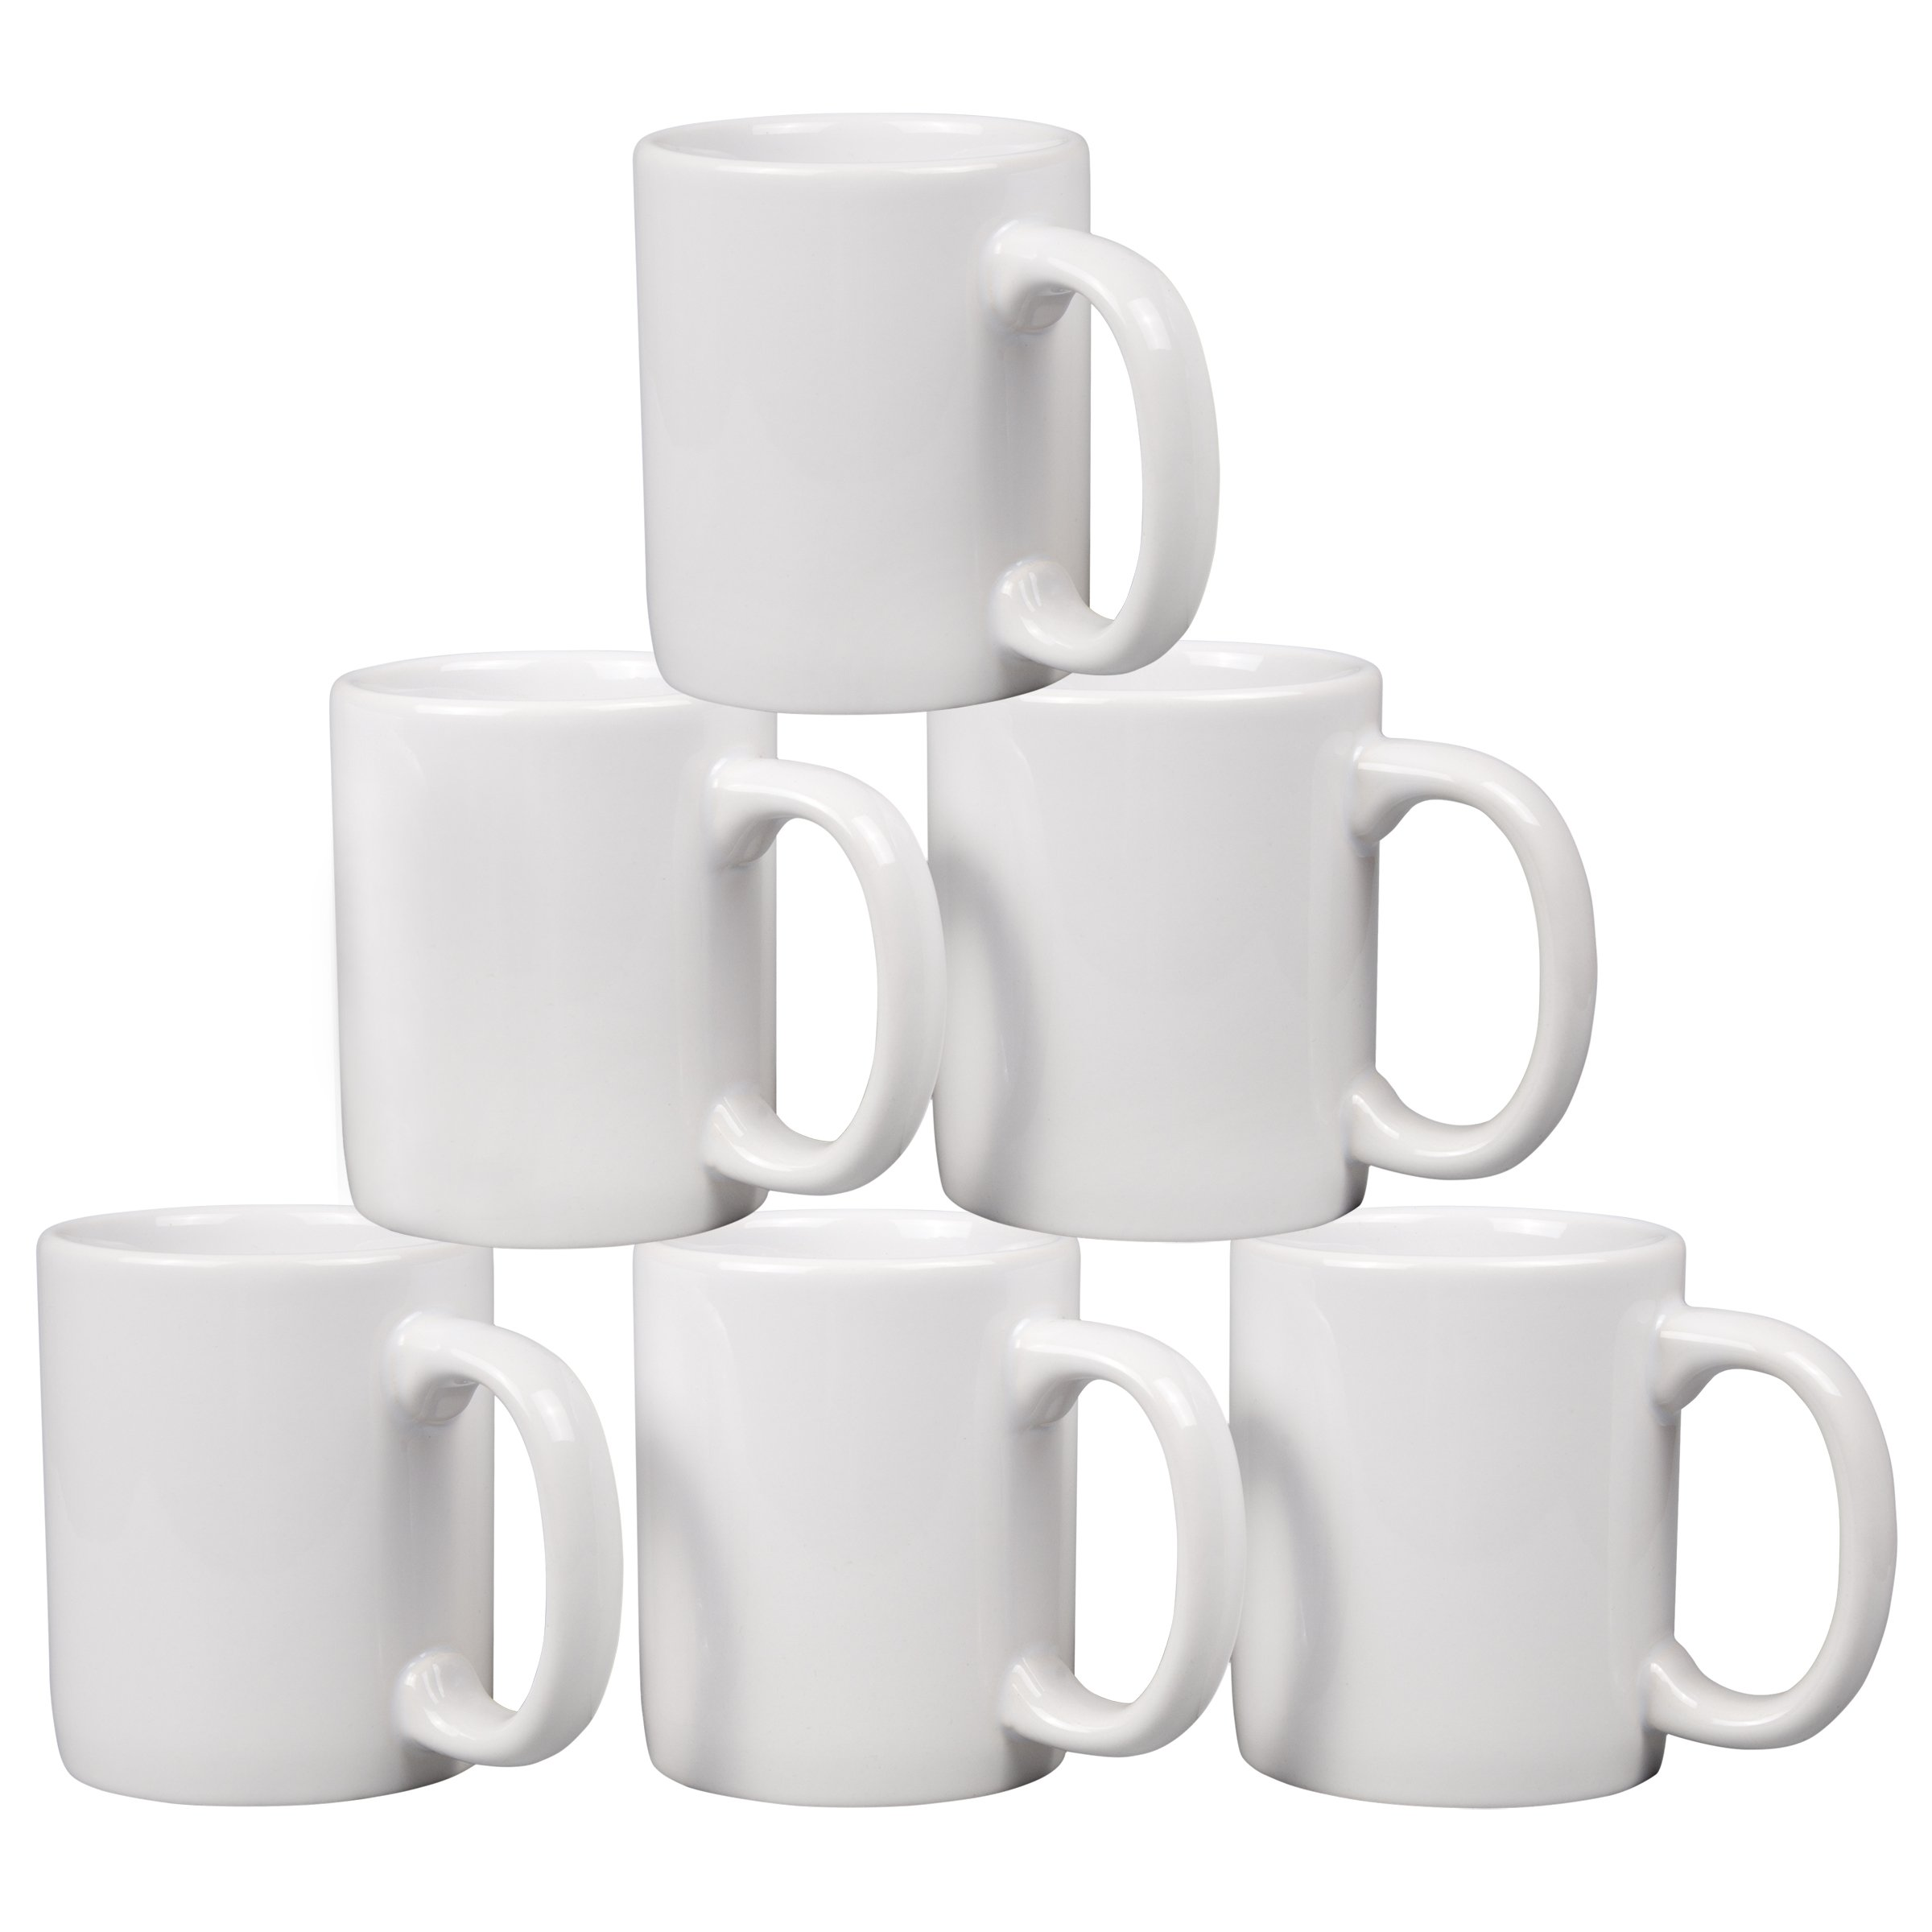 Creative Home 85355 Set of 6 Piece, 12 Oz Ceramic Coffee Mug Tea Cup, 3-1/4'' D x 4'' H, White by Creative Home (Image #2)